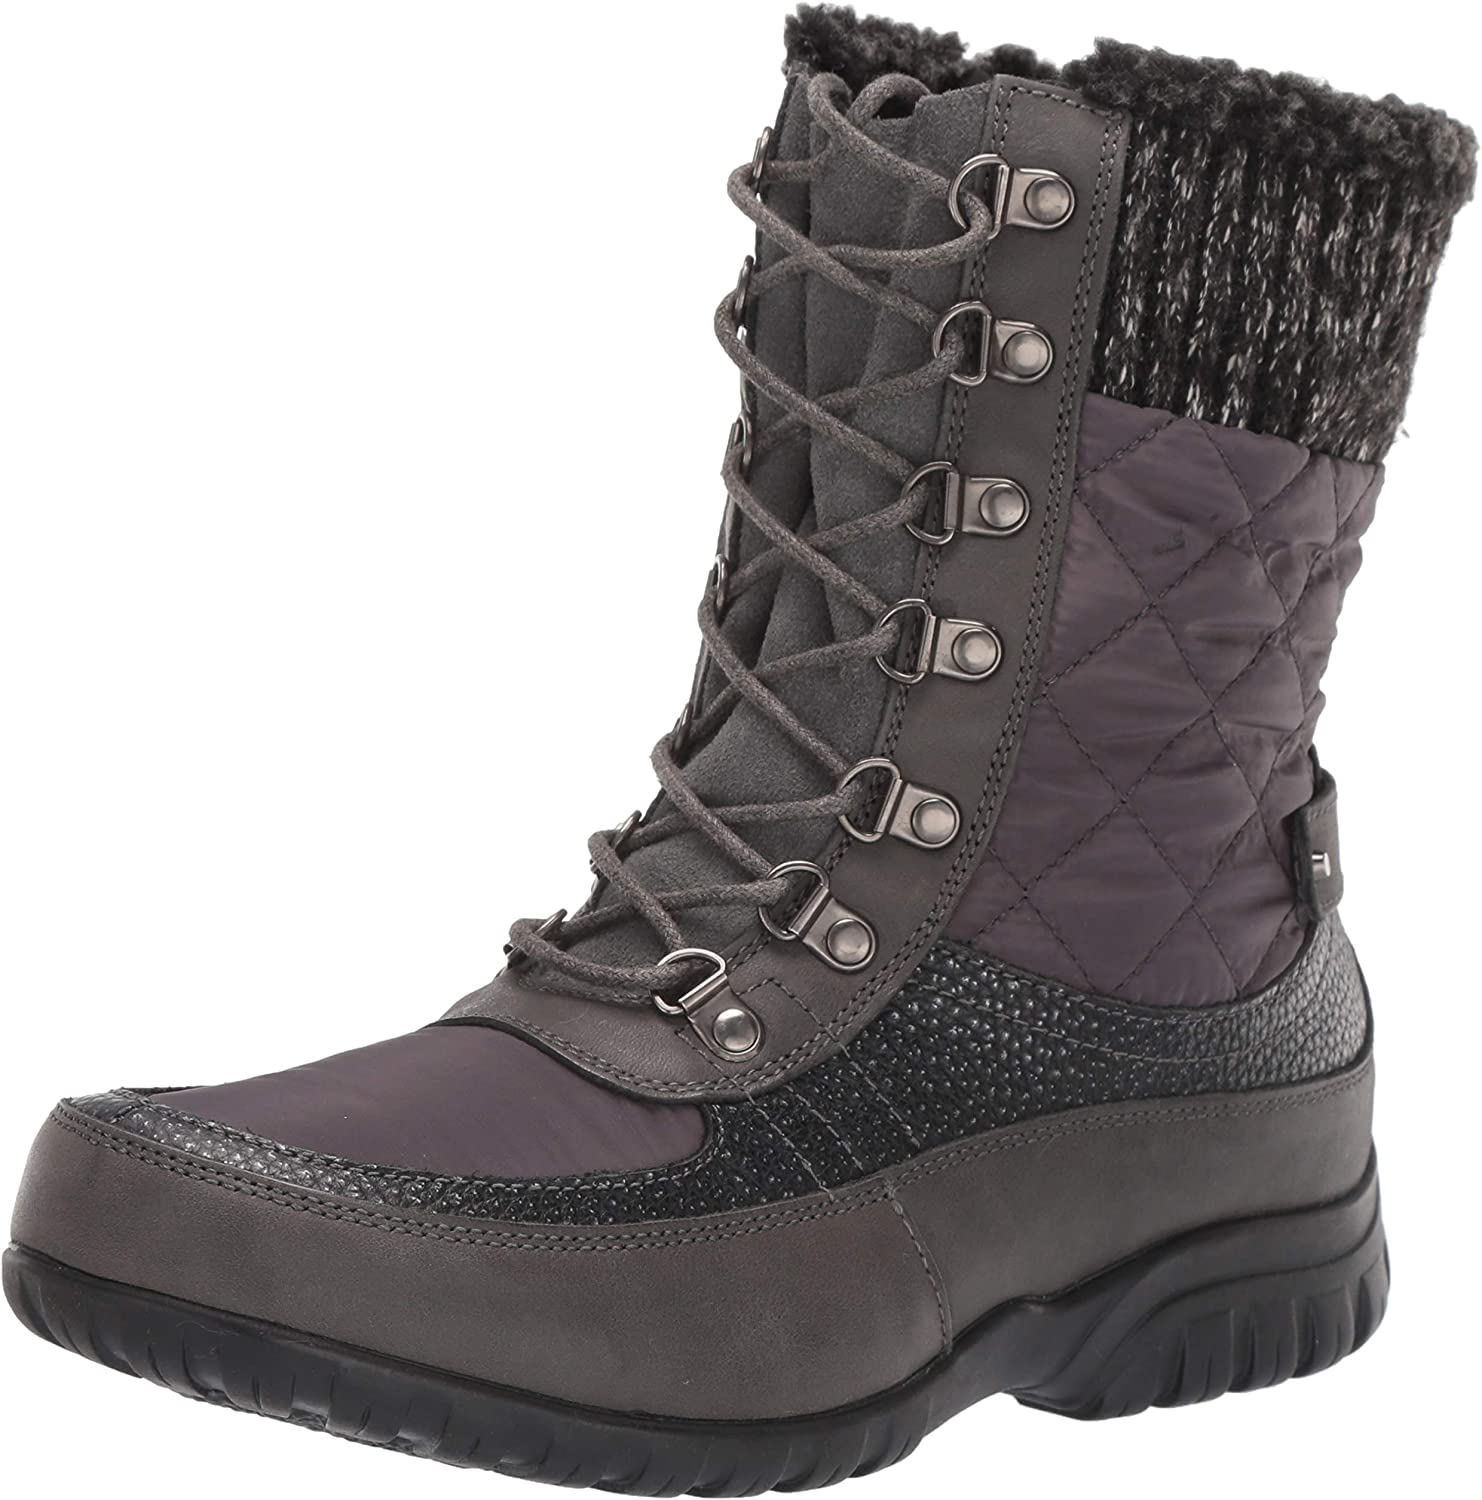 Propet Women's Delaney Boot Bombing free shipping Frost Many popular brands Snow